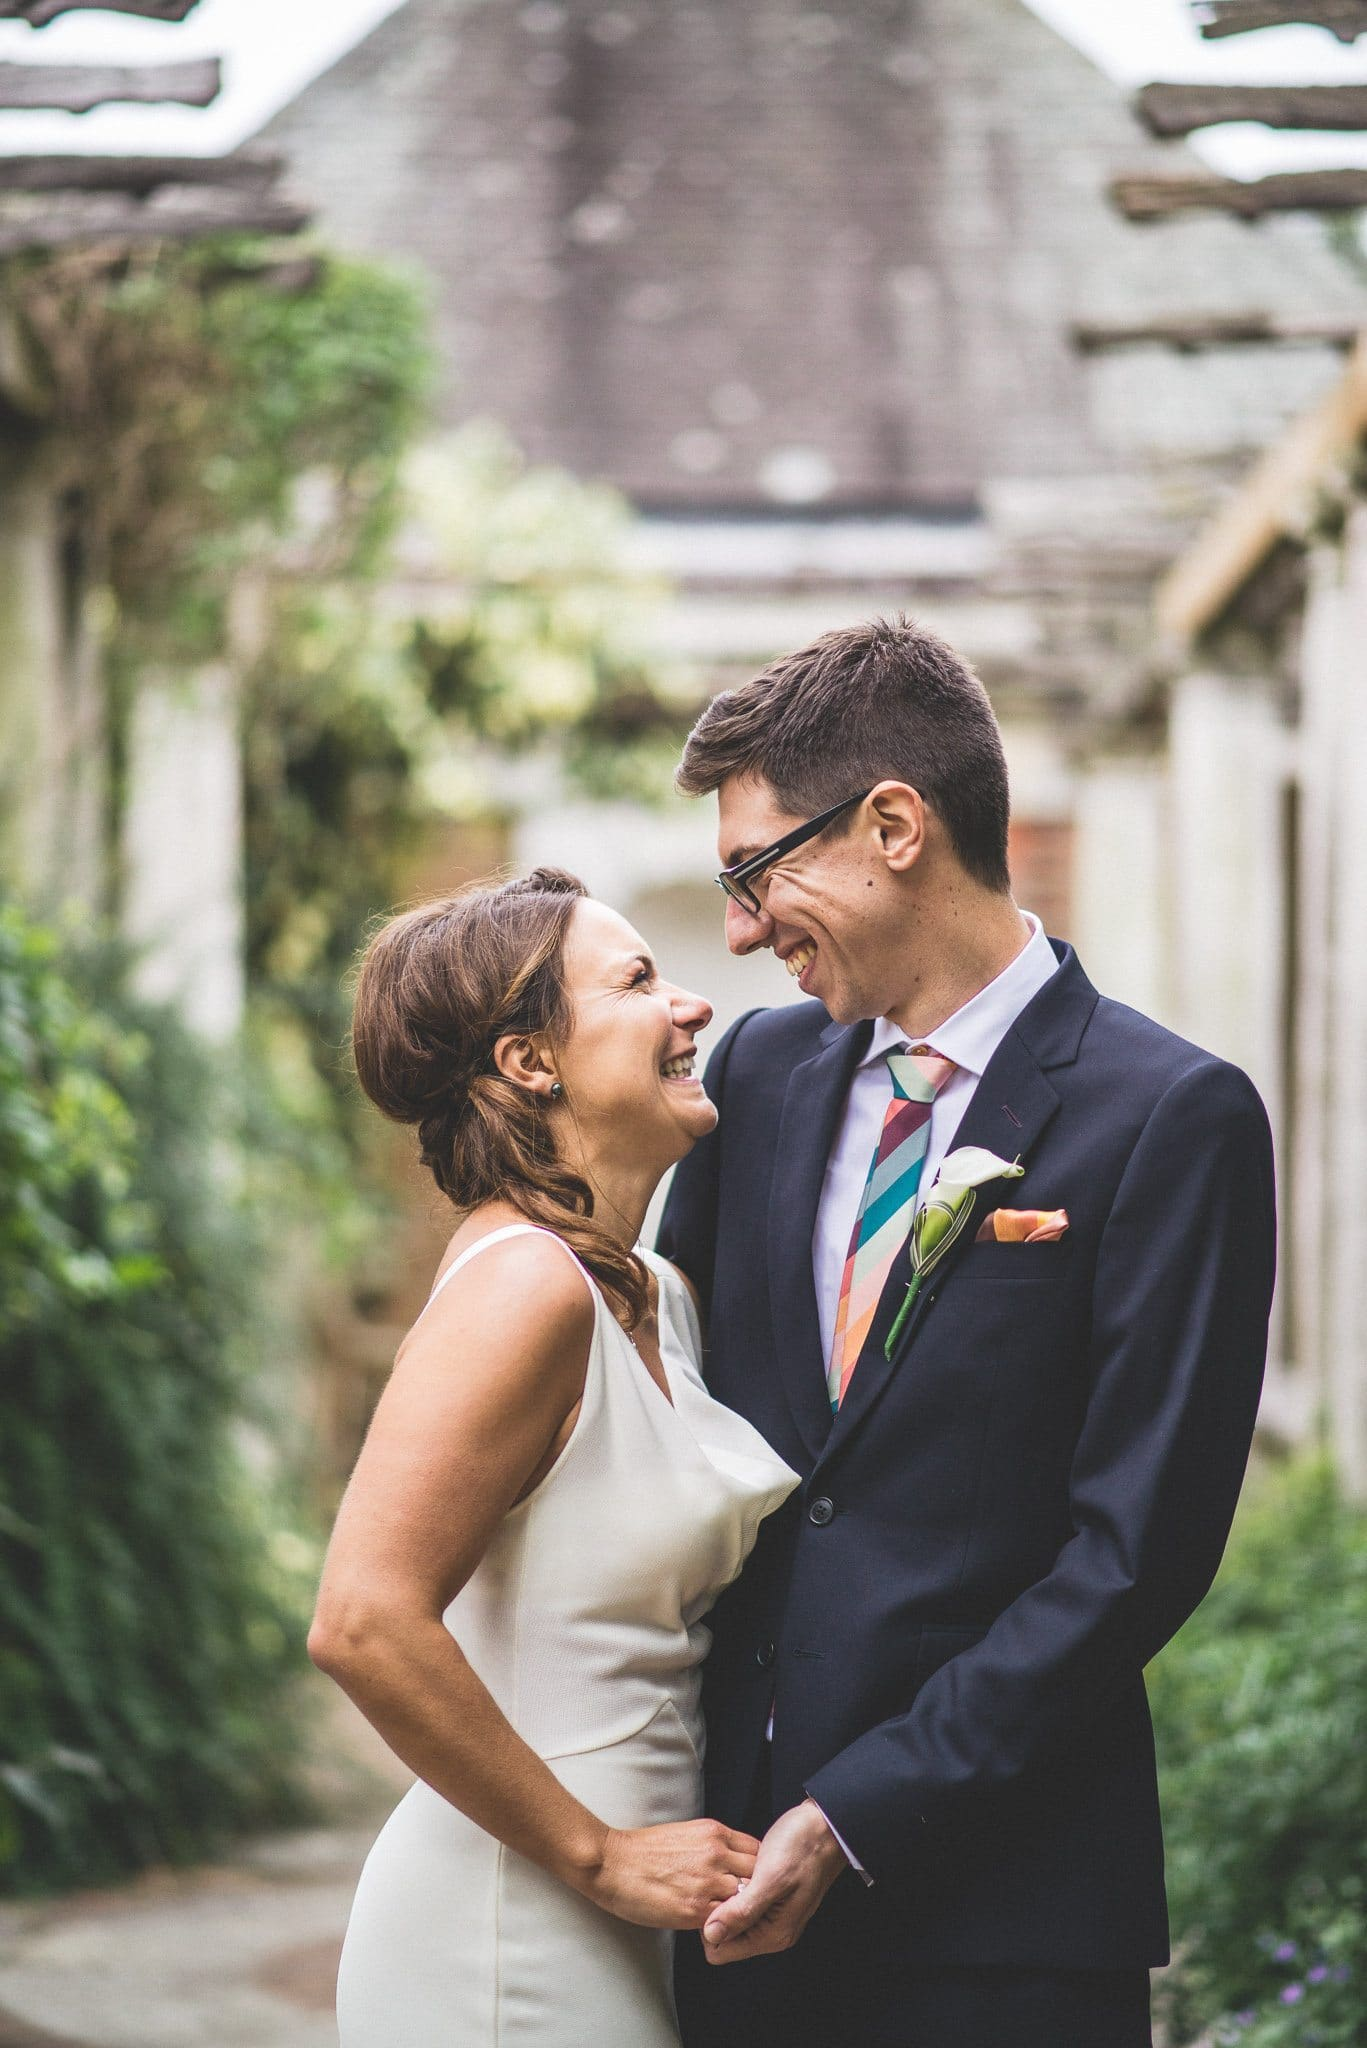 Ilaria and Marco grin joyfully at each other during their couple's shoot after the wedding ceremony